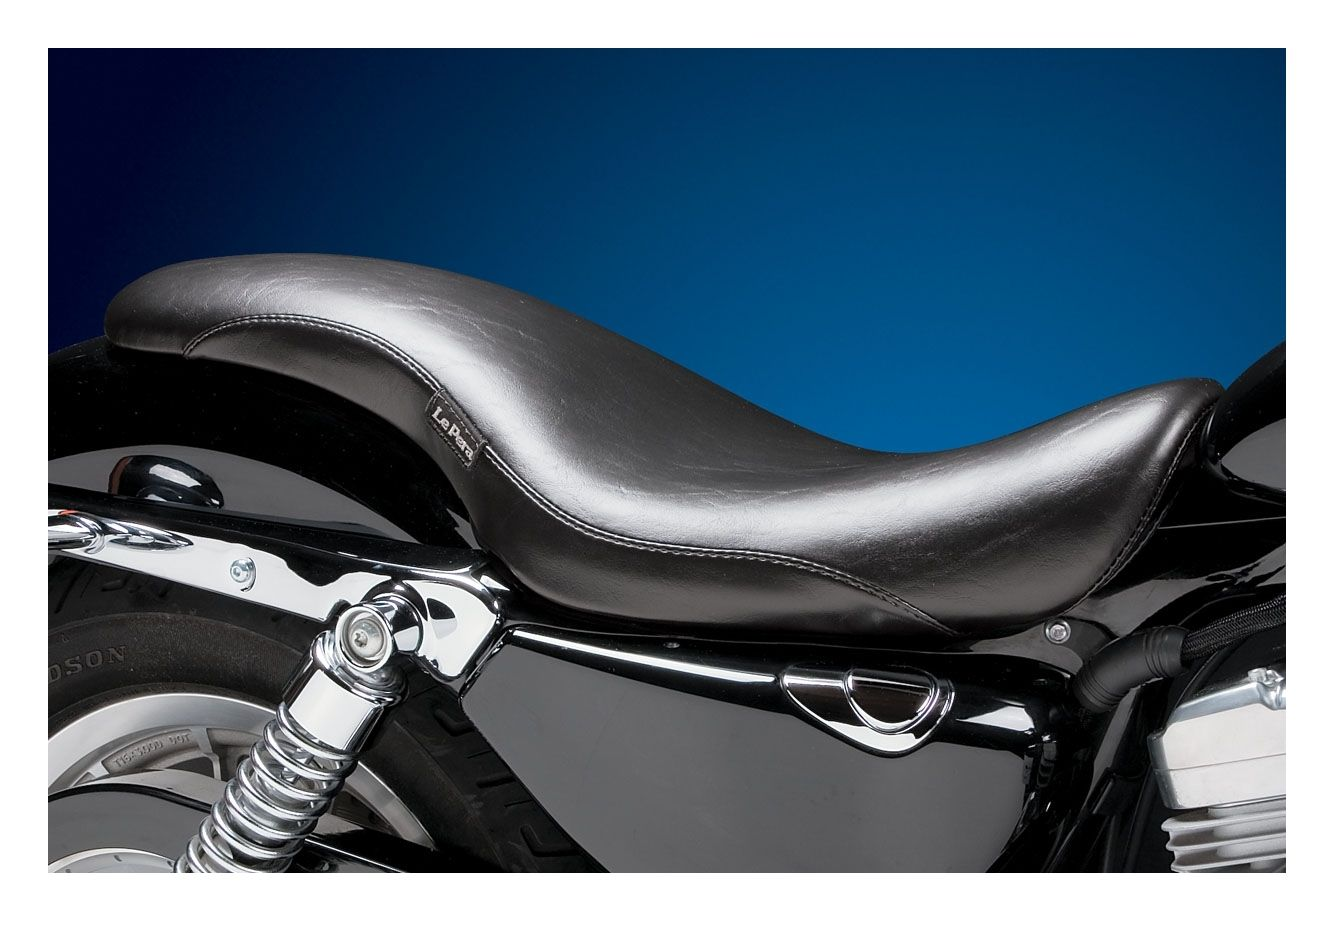 Le Pera King Cobra Seat For Harley Sportster With 3 3 Gallon Tank 2004-2020  | 20% ($71 19) Off!